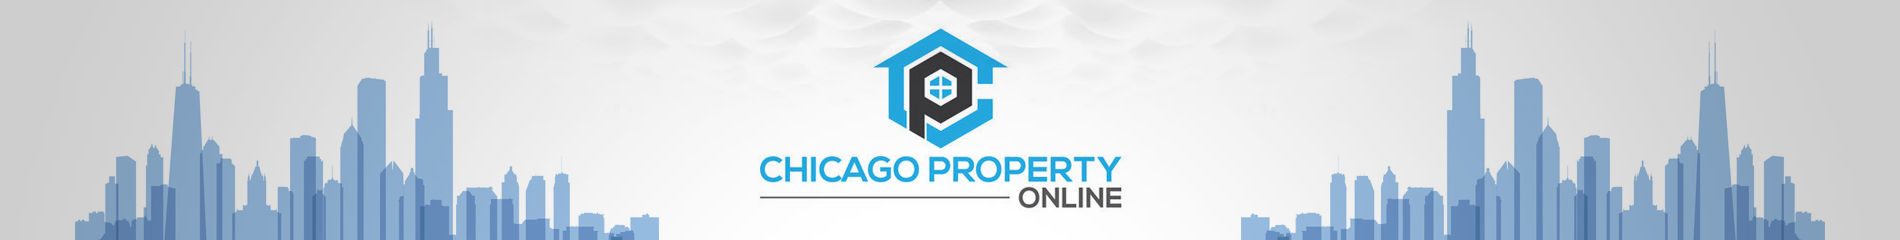 Chicago Property Online